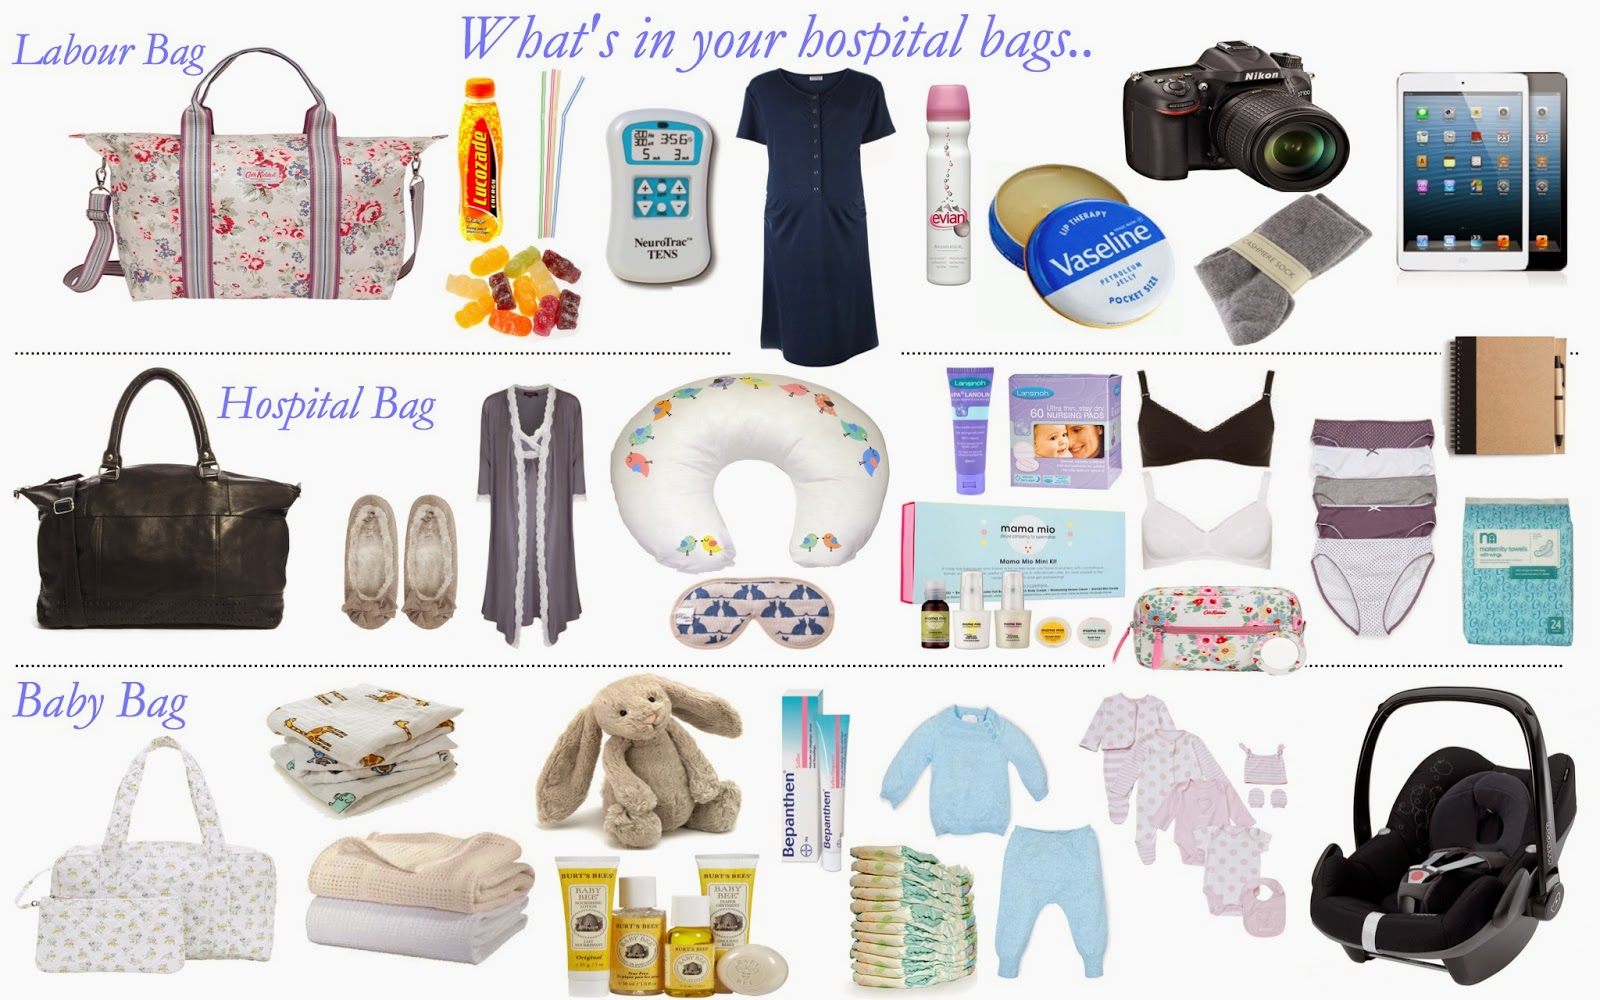 mamasVIB | V. I .BABY: Whats inside your hospital bags - yes bags! Why one bag isn't enough…., V. I .BAG | Whats inside your hospital bags - yes bags | Why one bag isn't enough | labour bag | hospital bag | baby bag | essential items for hospital bag | baby essentials for hospital | mum and baby | birth plan | hospital list | new baby | hospital stay | Cath Kidston | maternity nightwear | burts bees | baby products | birth day | mamasVIB |